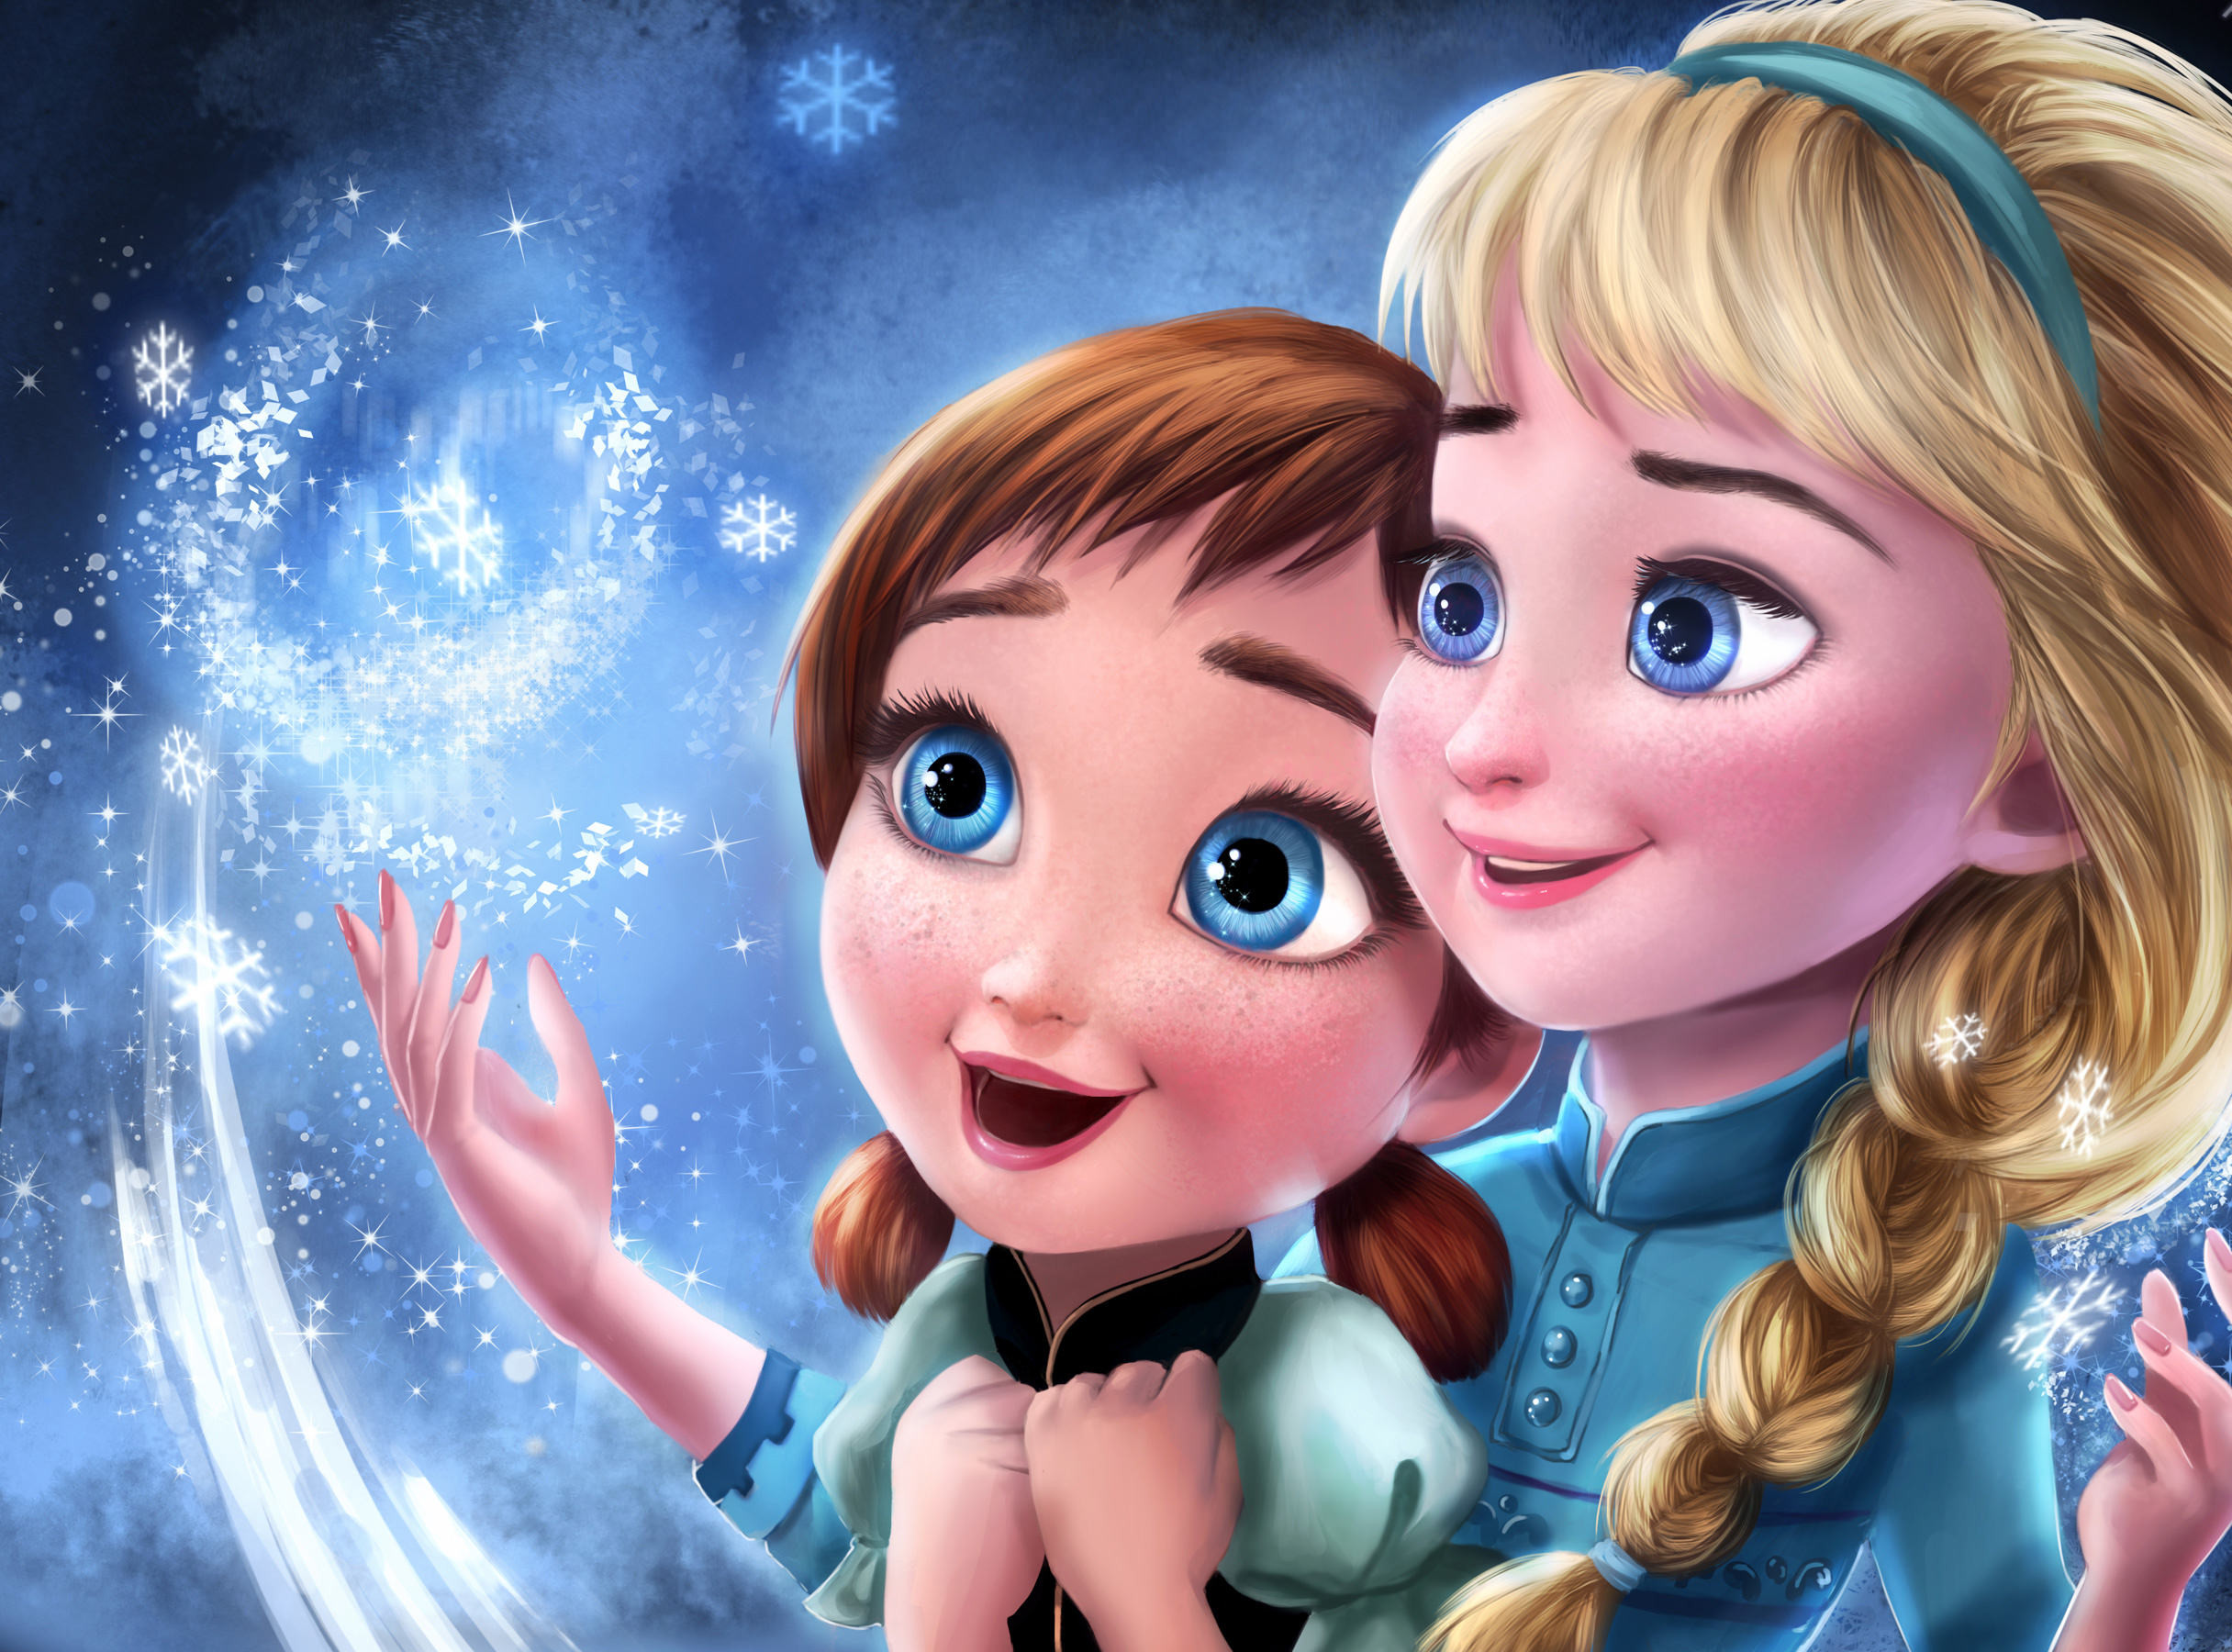 Res: 2432x1800, Frozen Elsa Anna Sisters Wallpaper